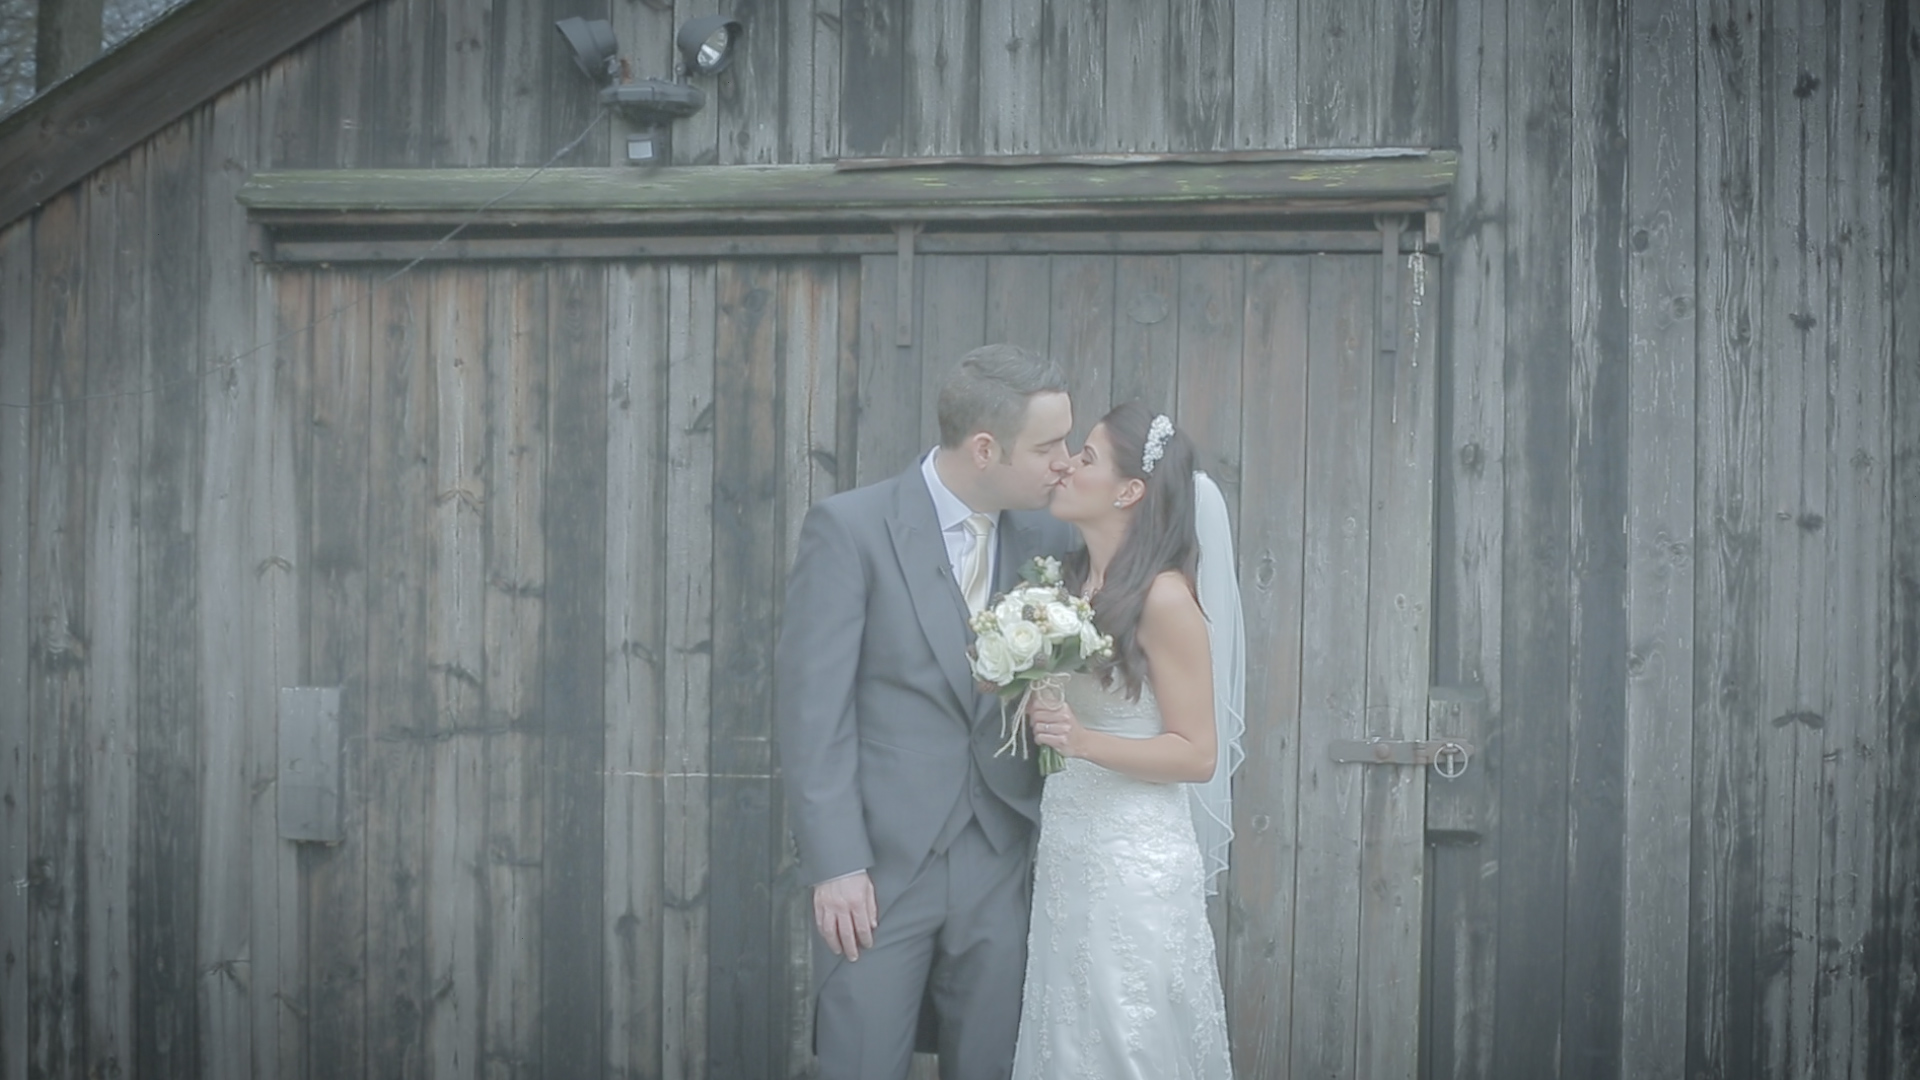 Raw wedding film rushes, without colour grading